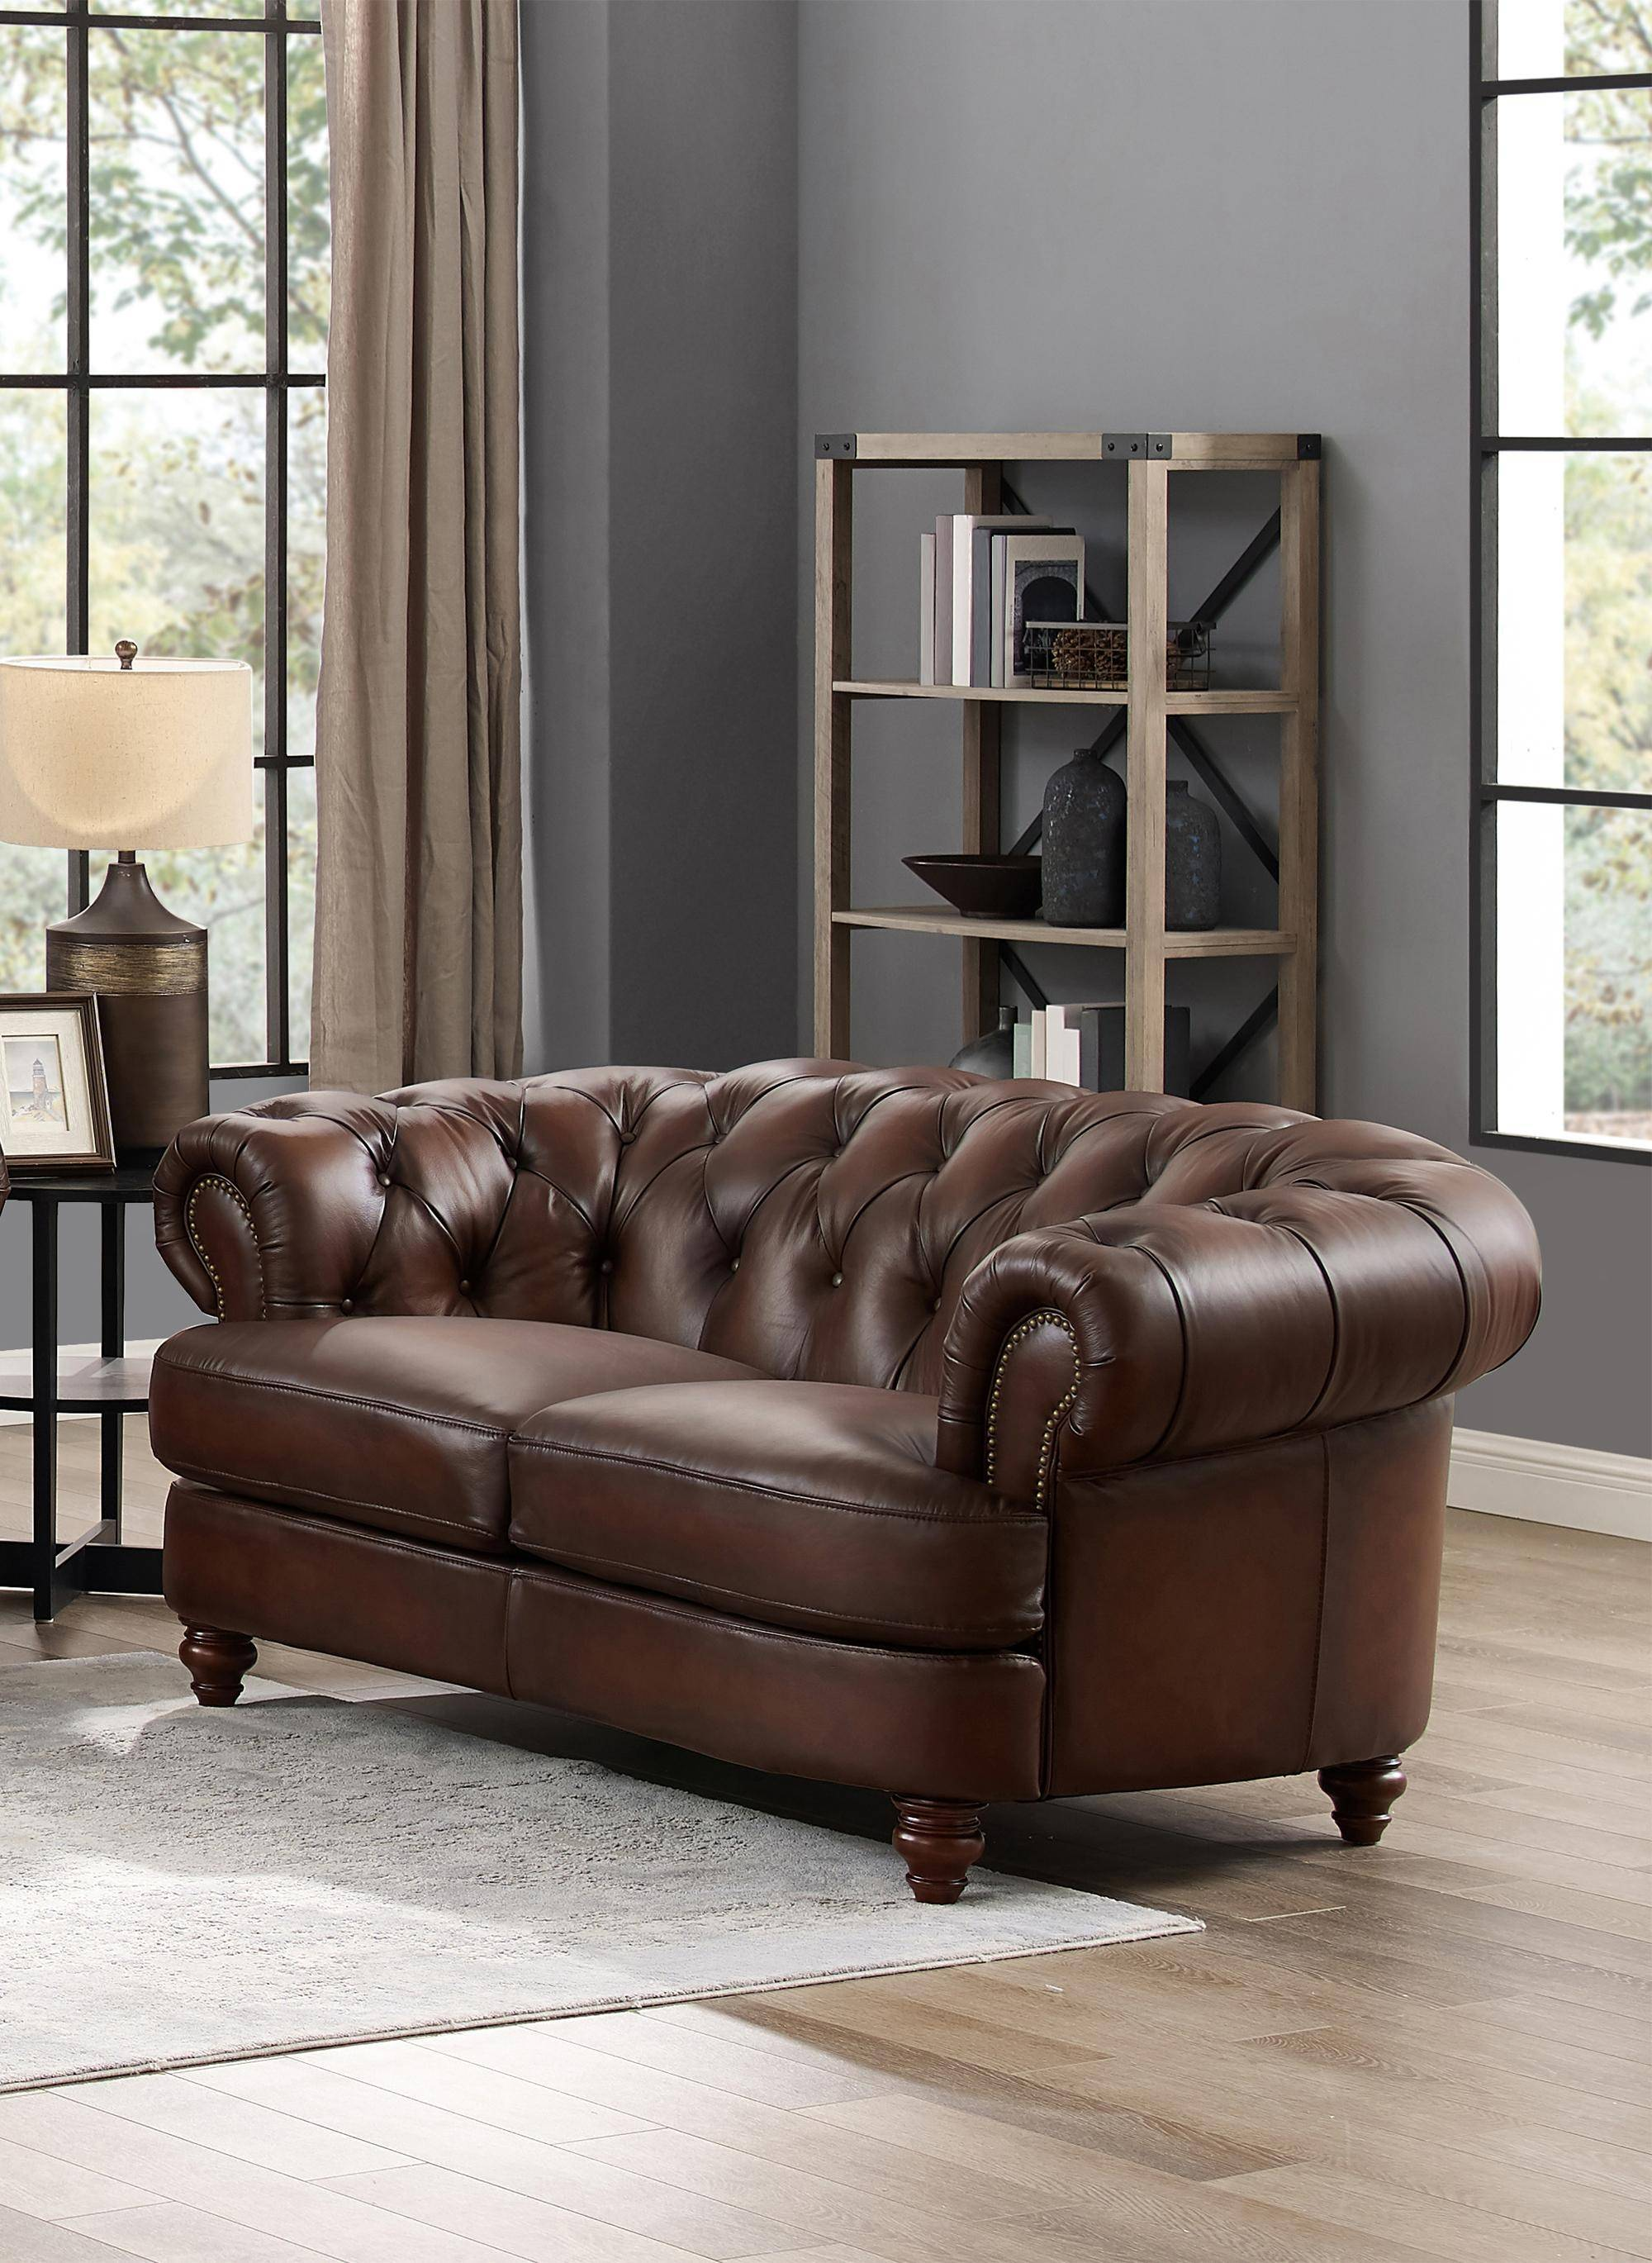 Luxury Dark Brown Melton Genuine Leather Loveseat Hydeline Classic Traditional Melton 9956lv1866h